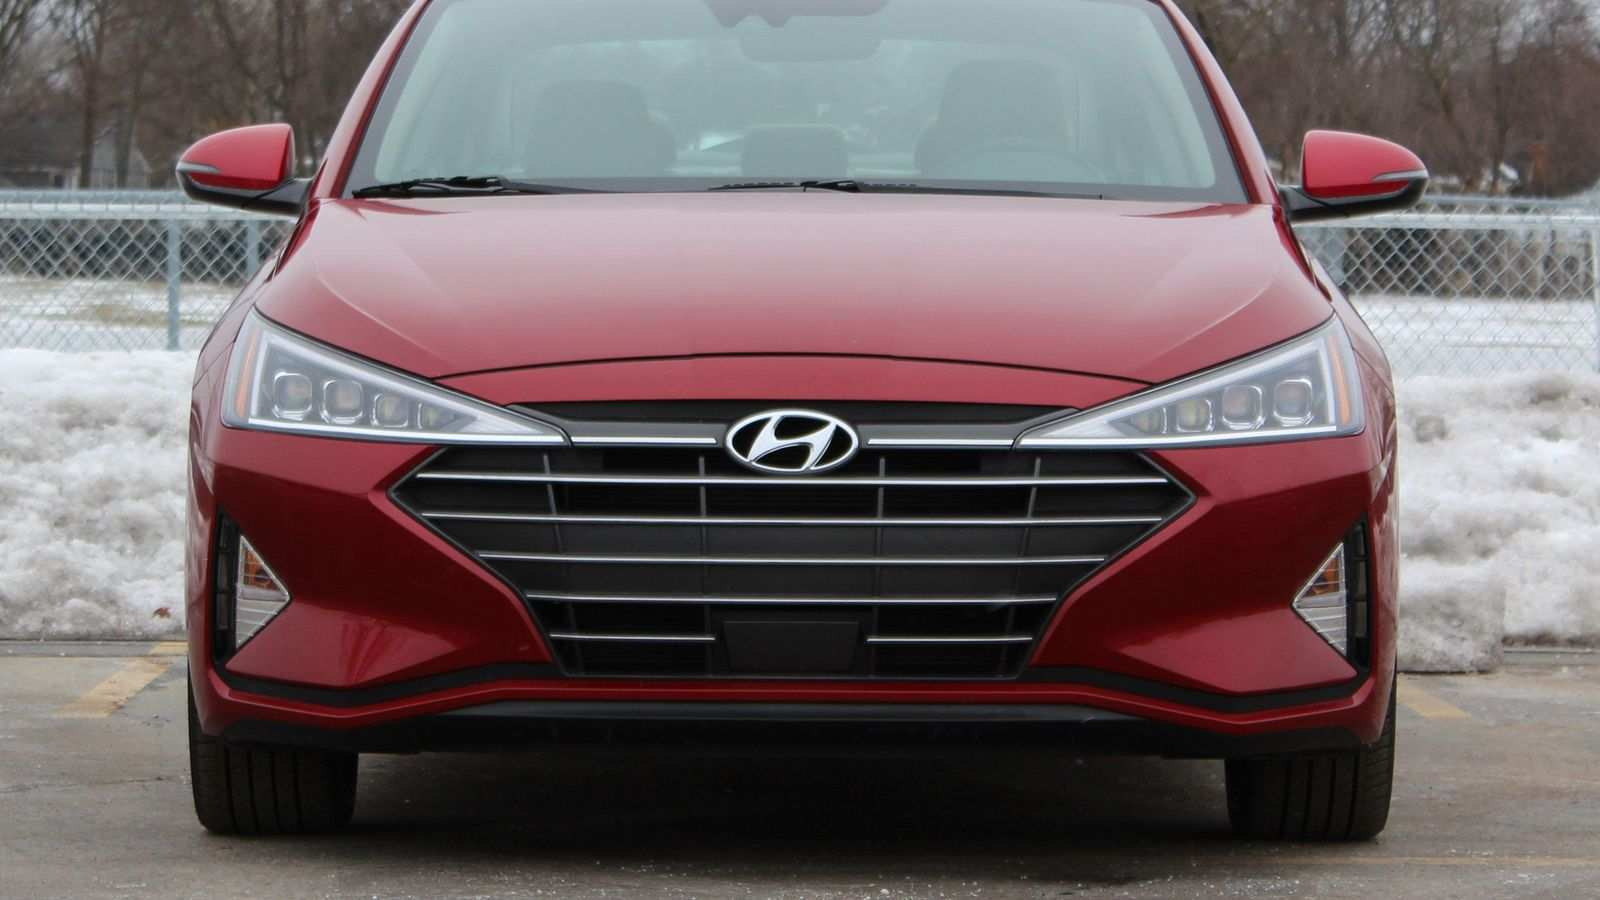 40 The 2020 Hyundai Elantra Sedan Price And Review